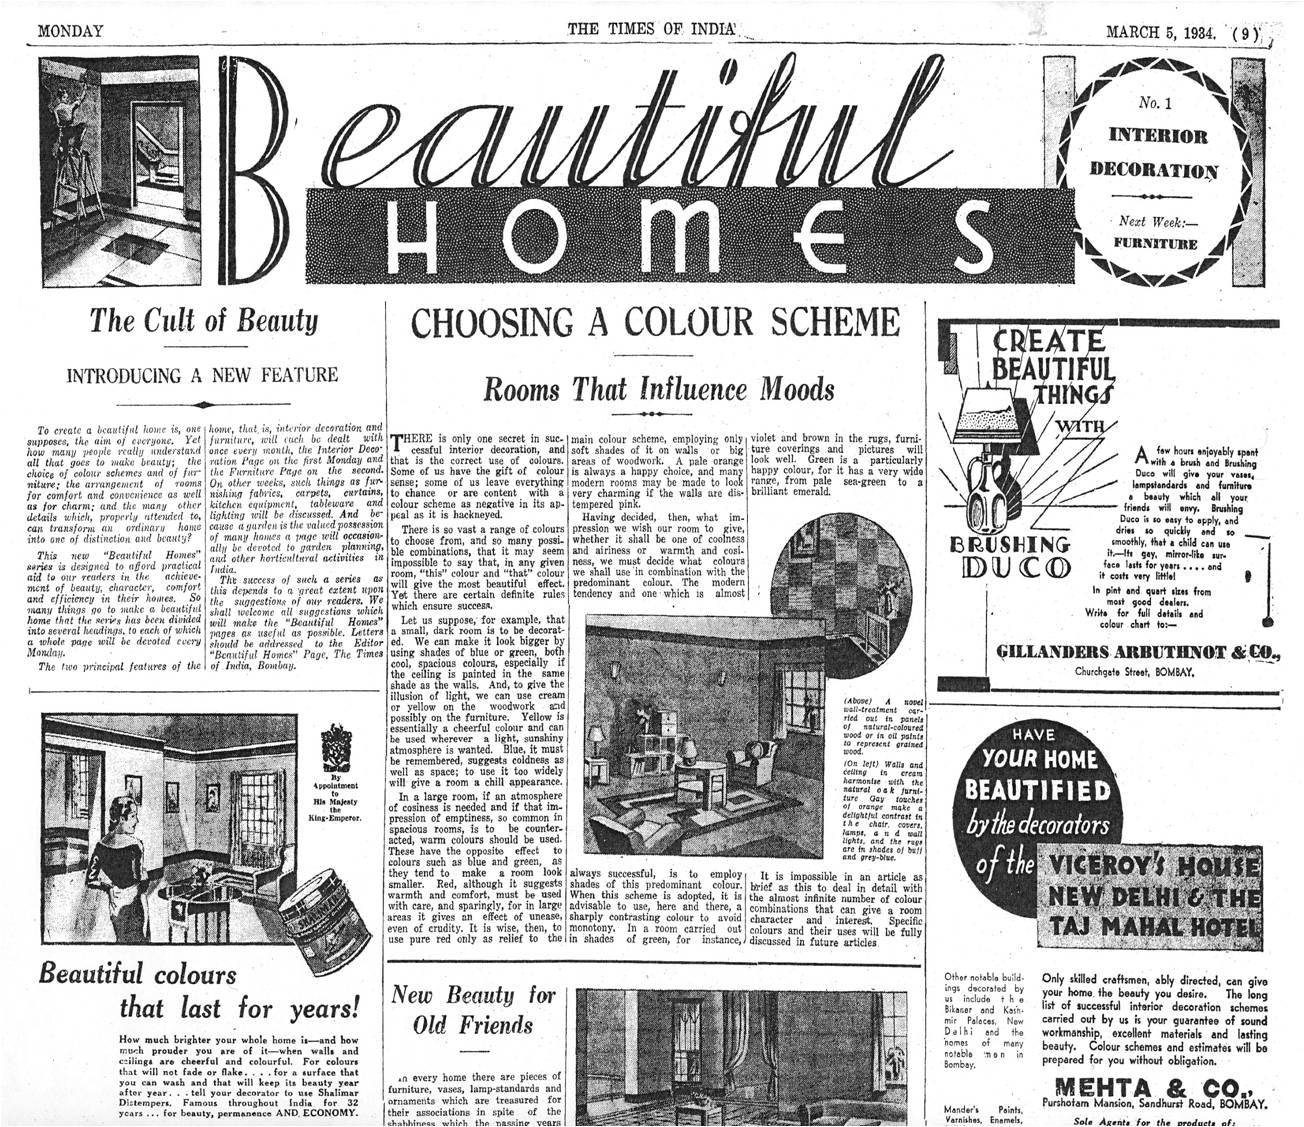 Vintage ads: How Mumbai home decor was transformed by a global ...